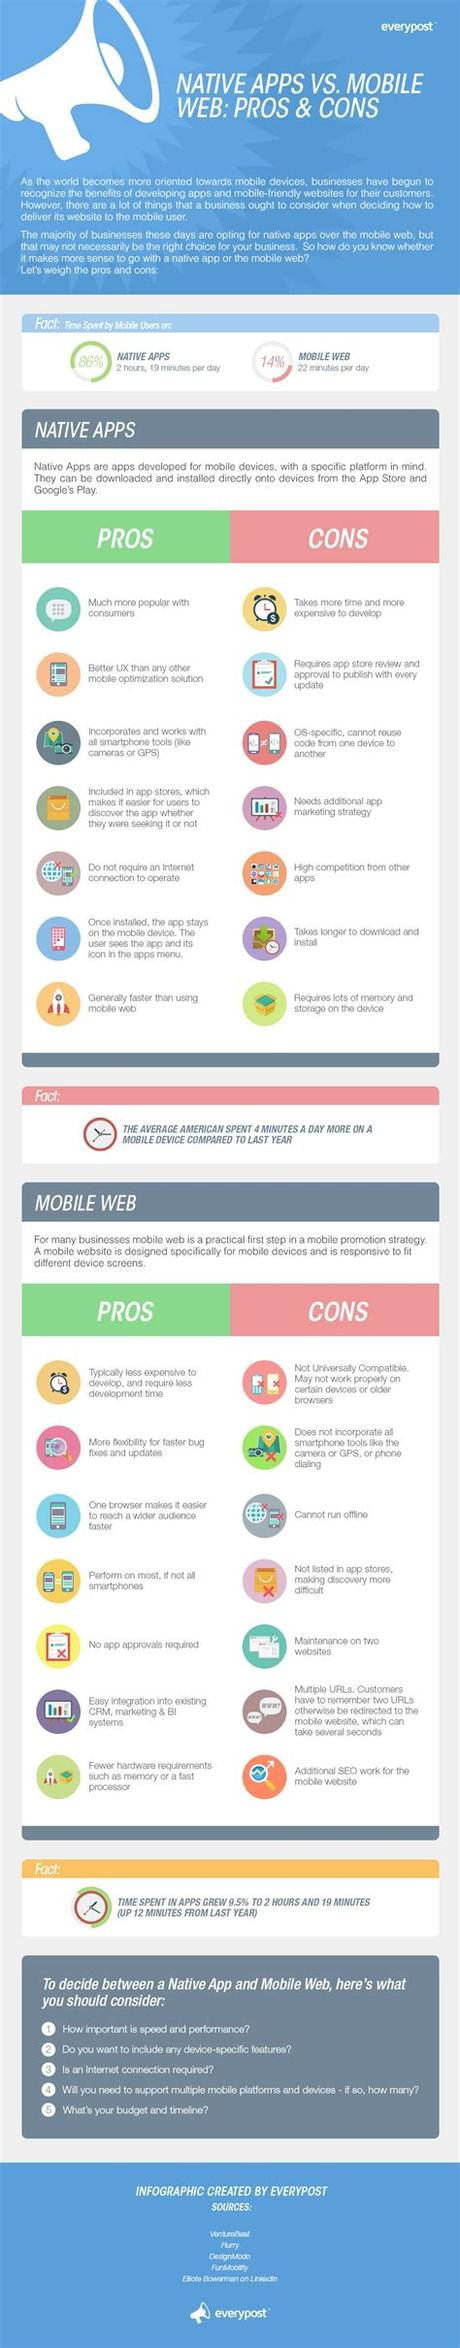 Because native apps are native to the platform, they work faster. Native Apps vs. Mobile Web: Pros and Cons #infographic ...